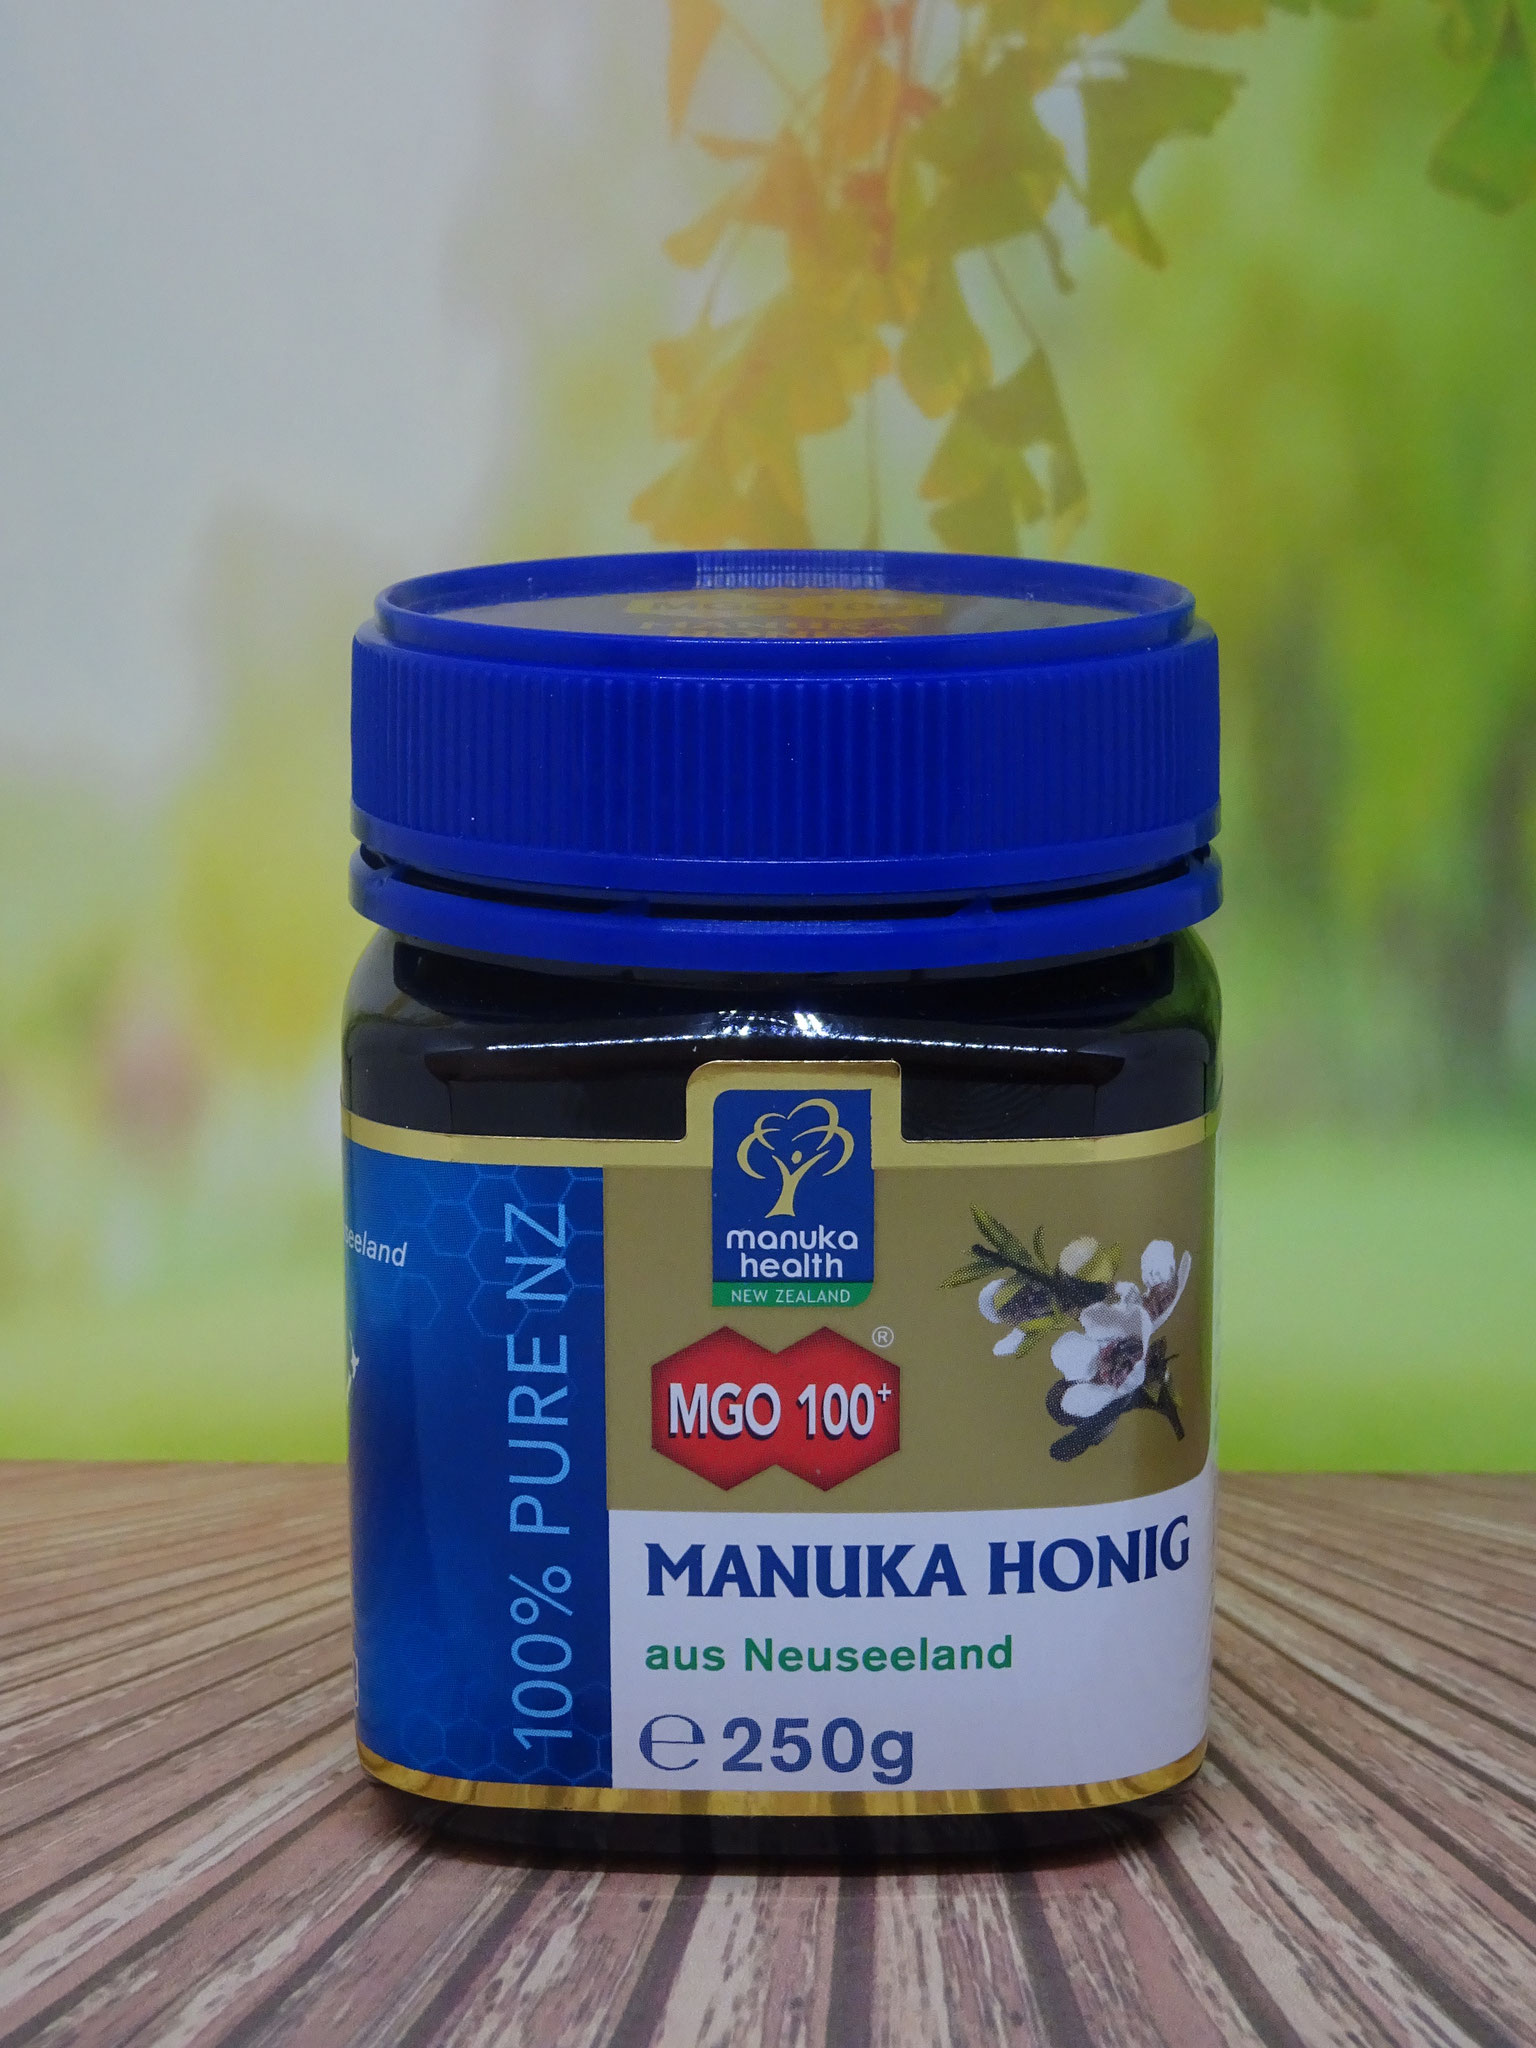 Manuka Honig MGO 100 250g (Manuka Health New Zealand)